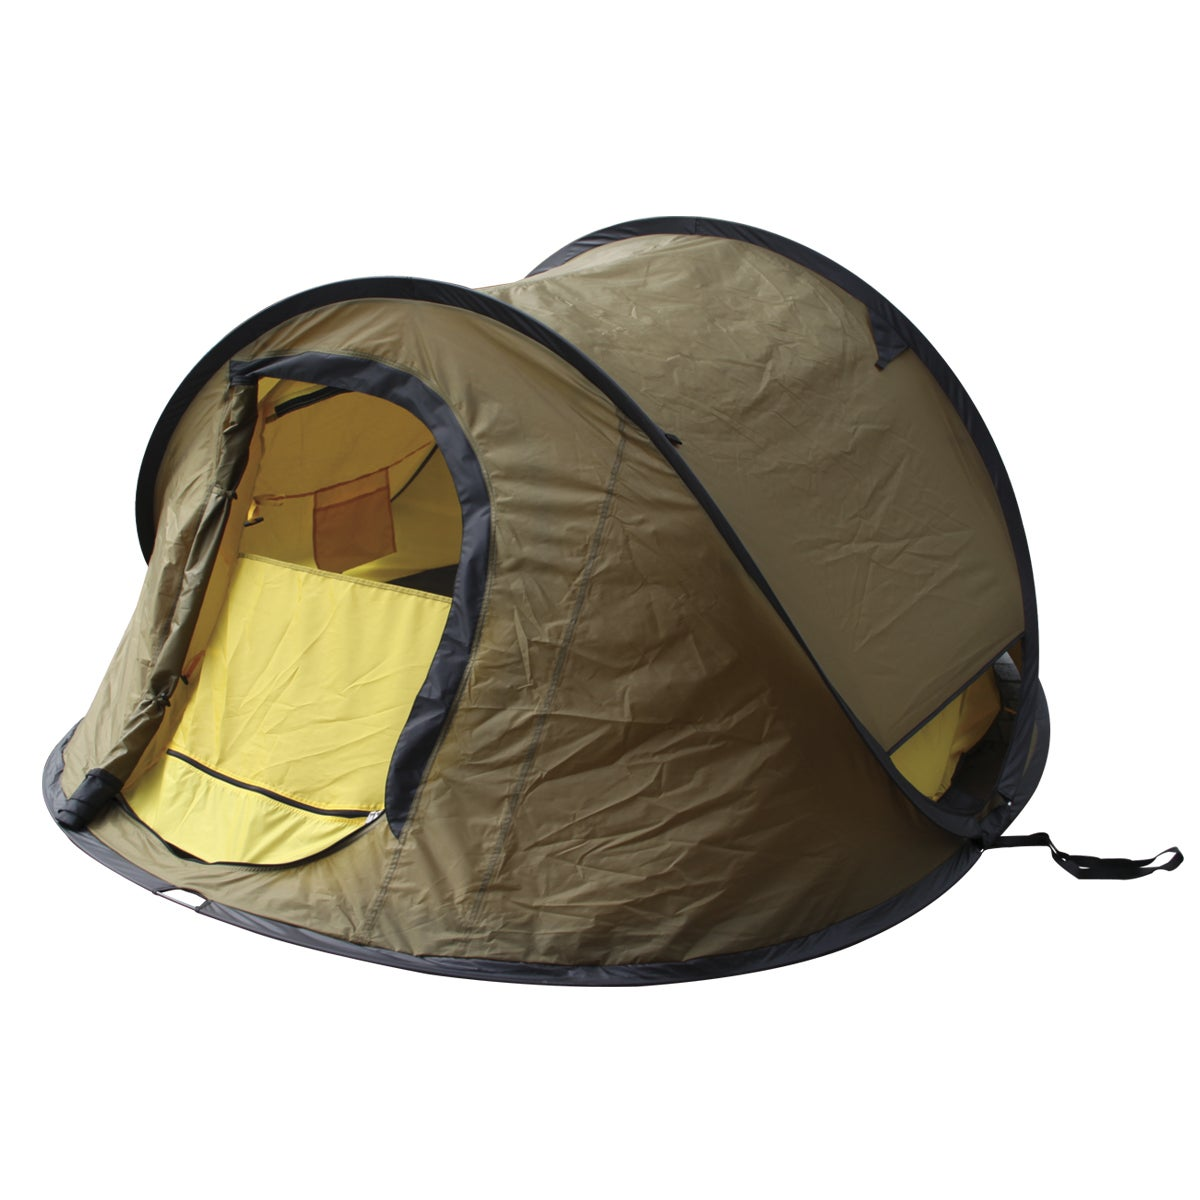 Quick Set Pop Up Tent 2 Person 5 Second Set Up Free